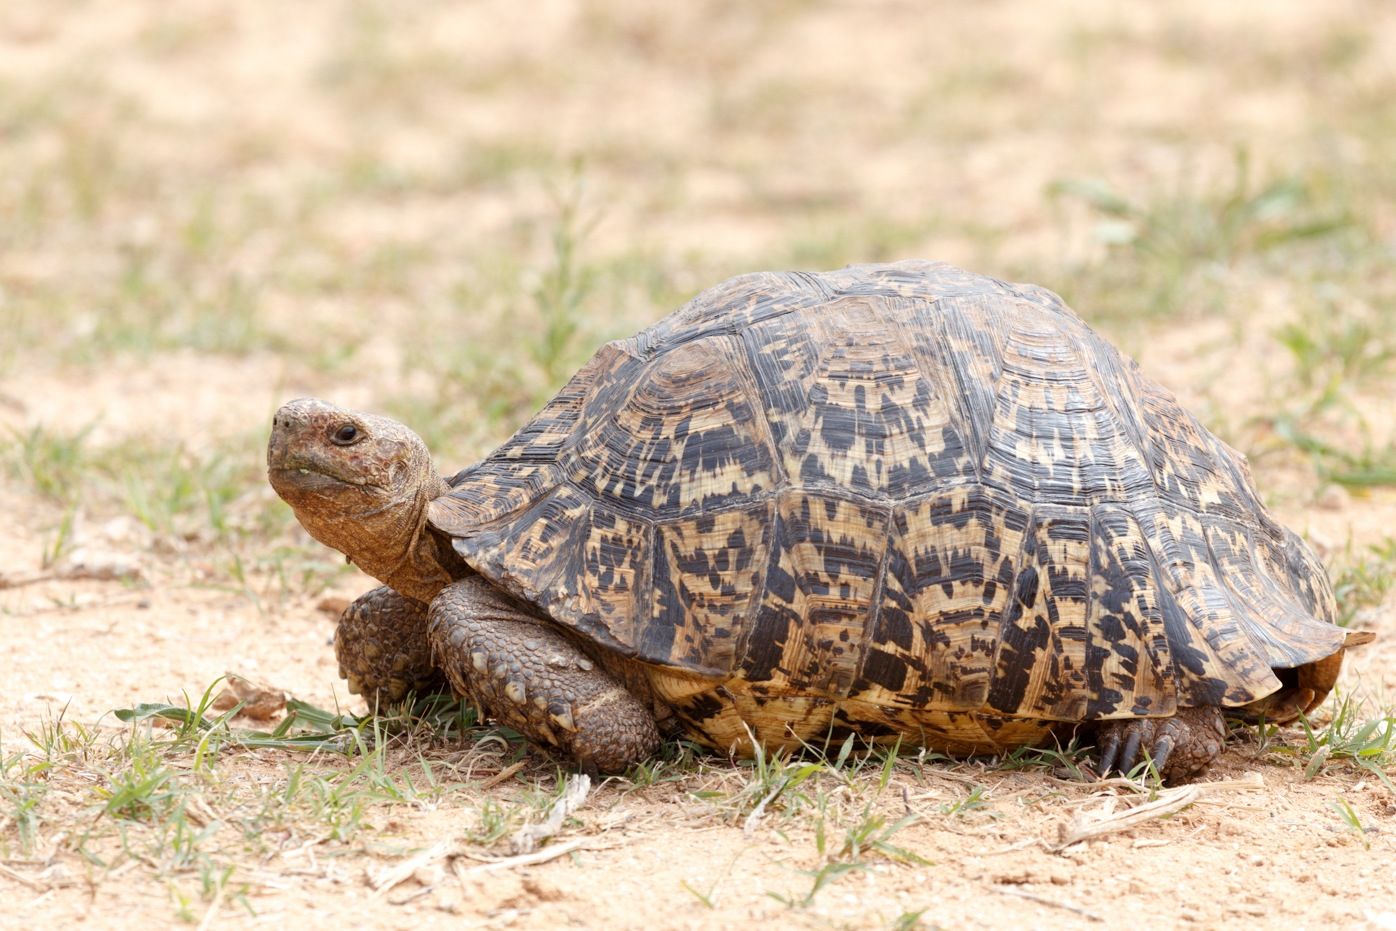 Tortoise just chilling on the ground by Charissa de Scande Lotter